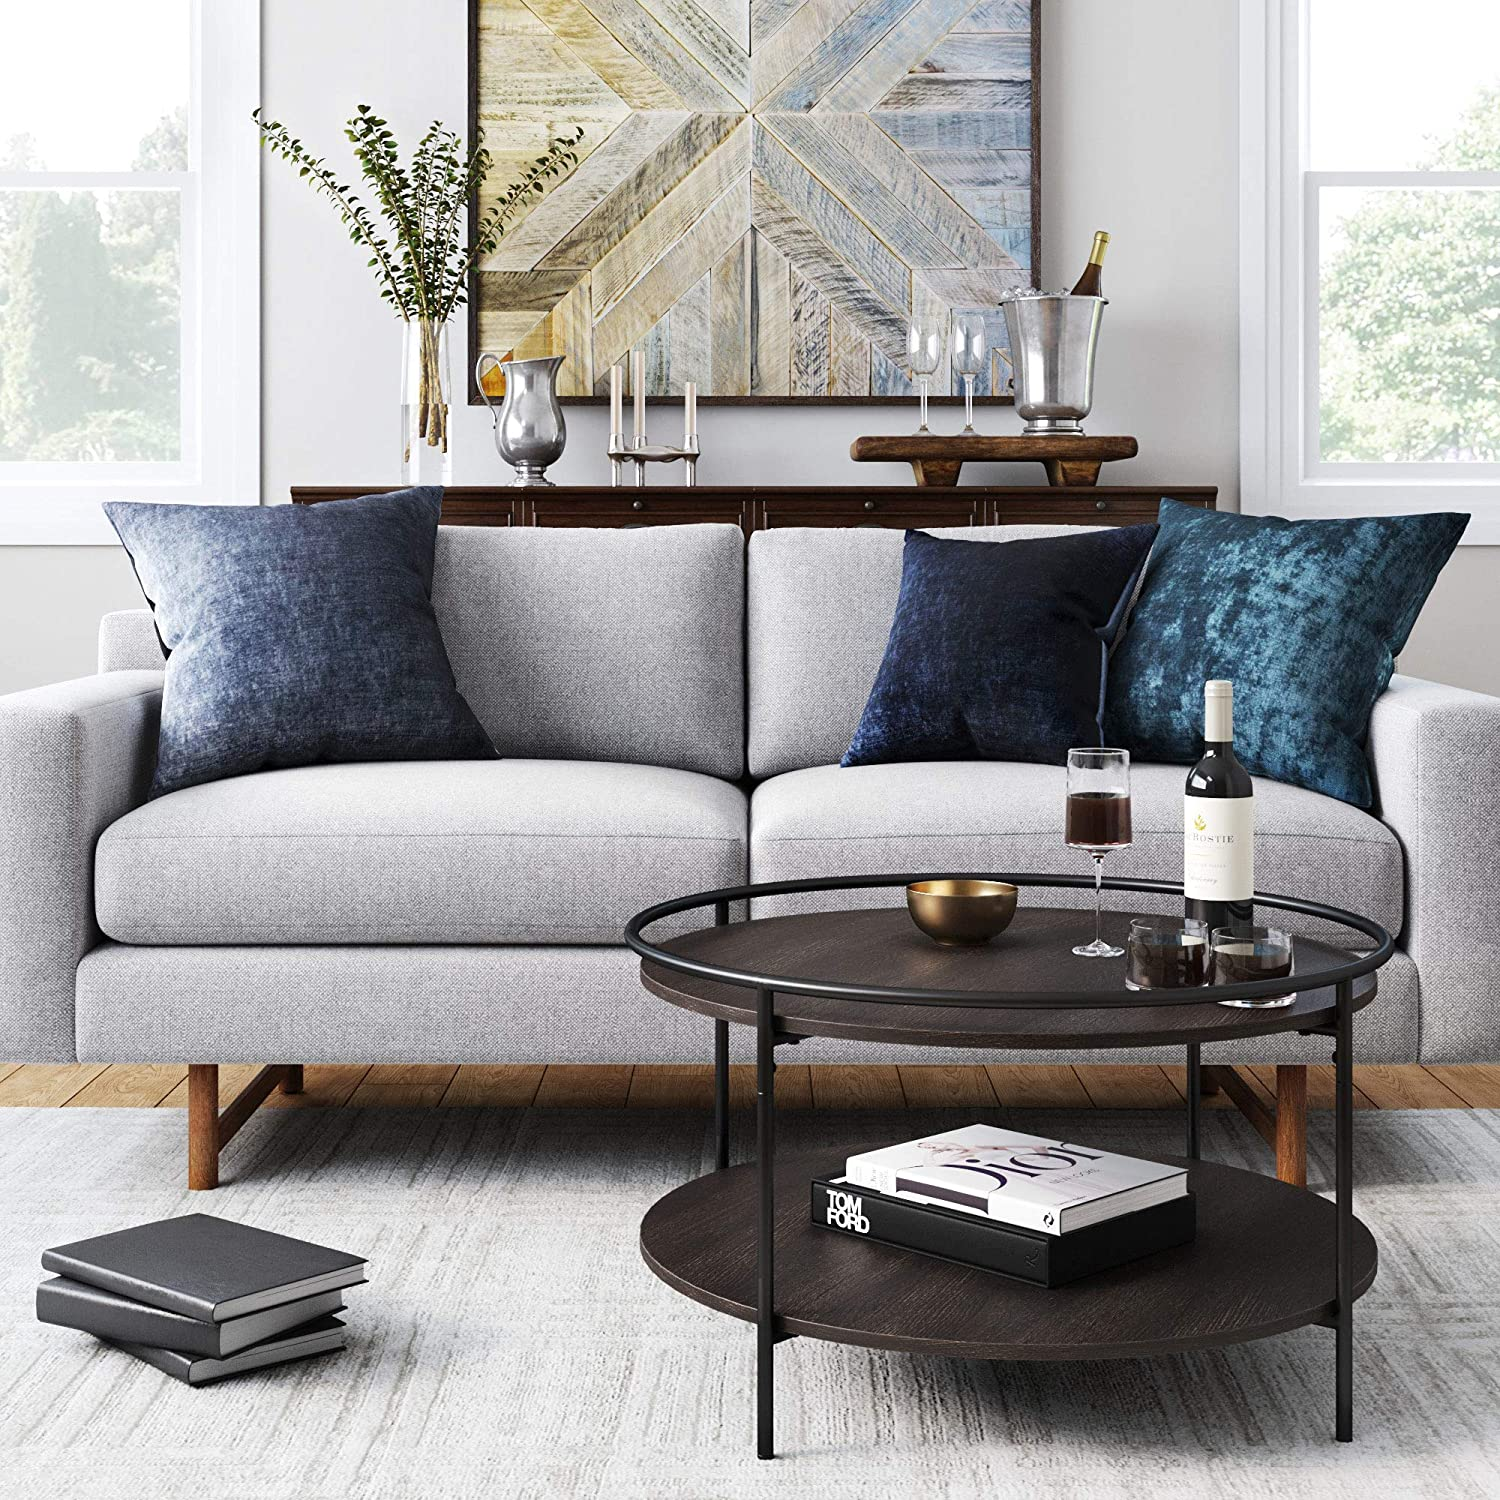 Nathan James Bodhi Mid-Century Nesting Coffee Table Set of 2, Stacking Side or End for Living Room with Faux Carrara Marble, Wood Finish Metal Legs, Dark Oak/Matte Black